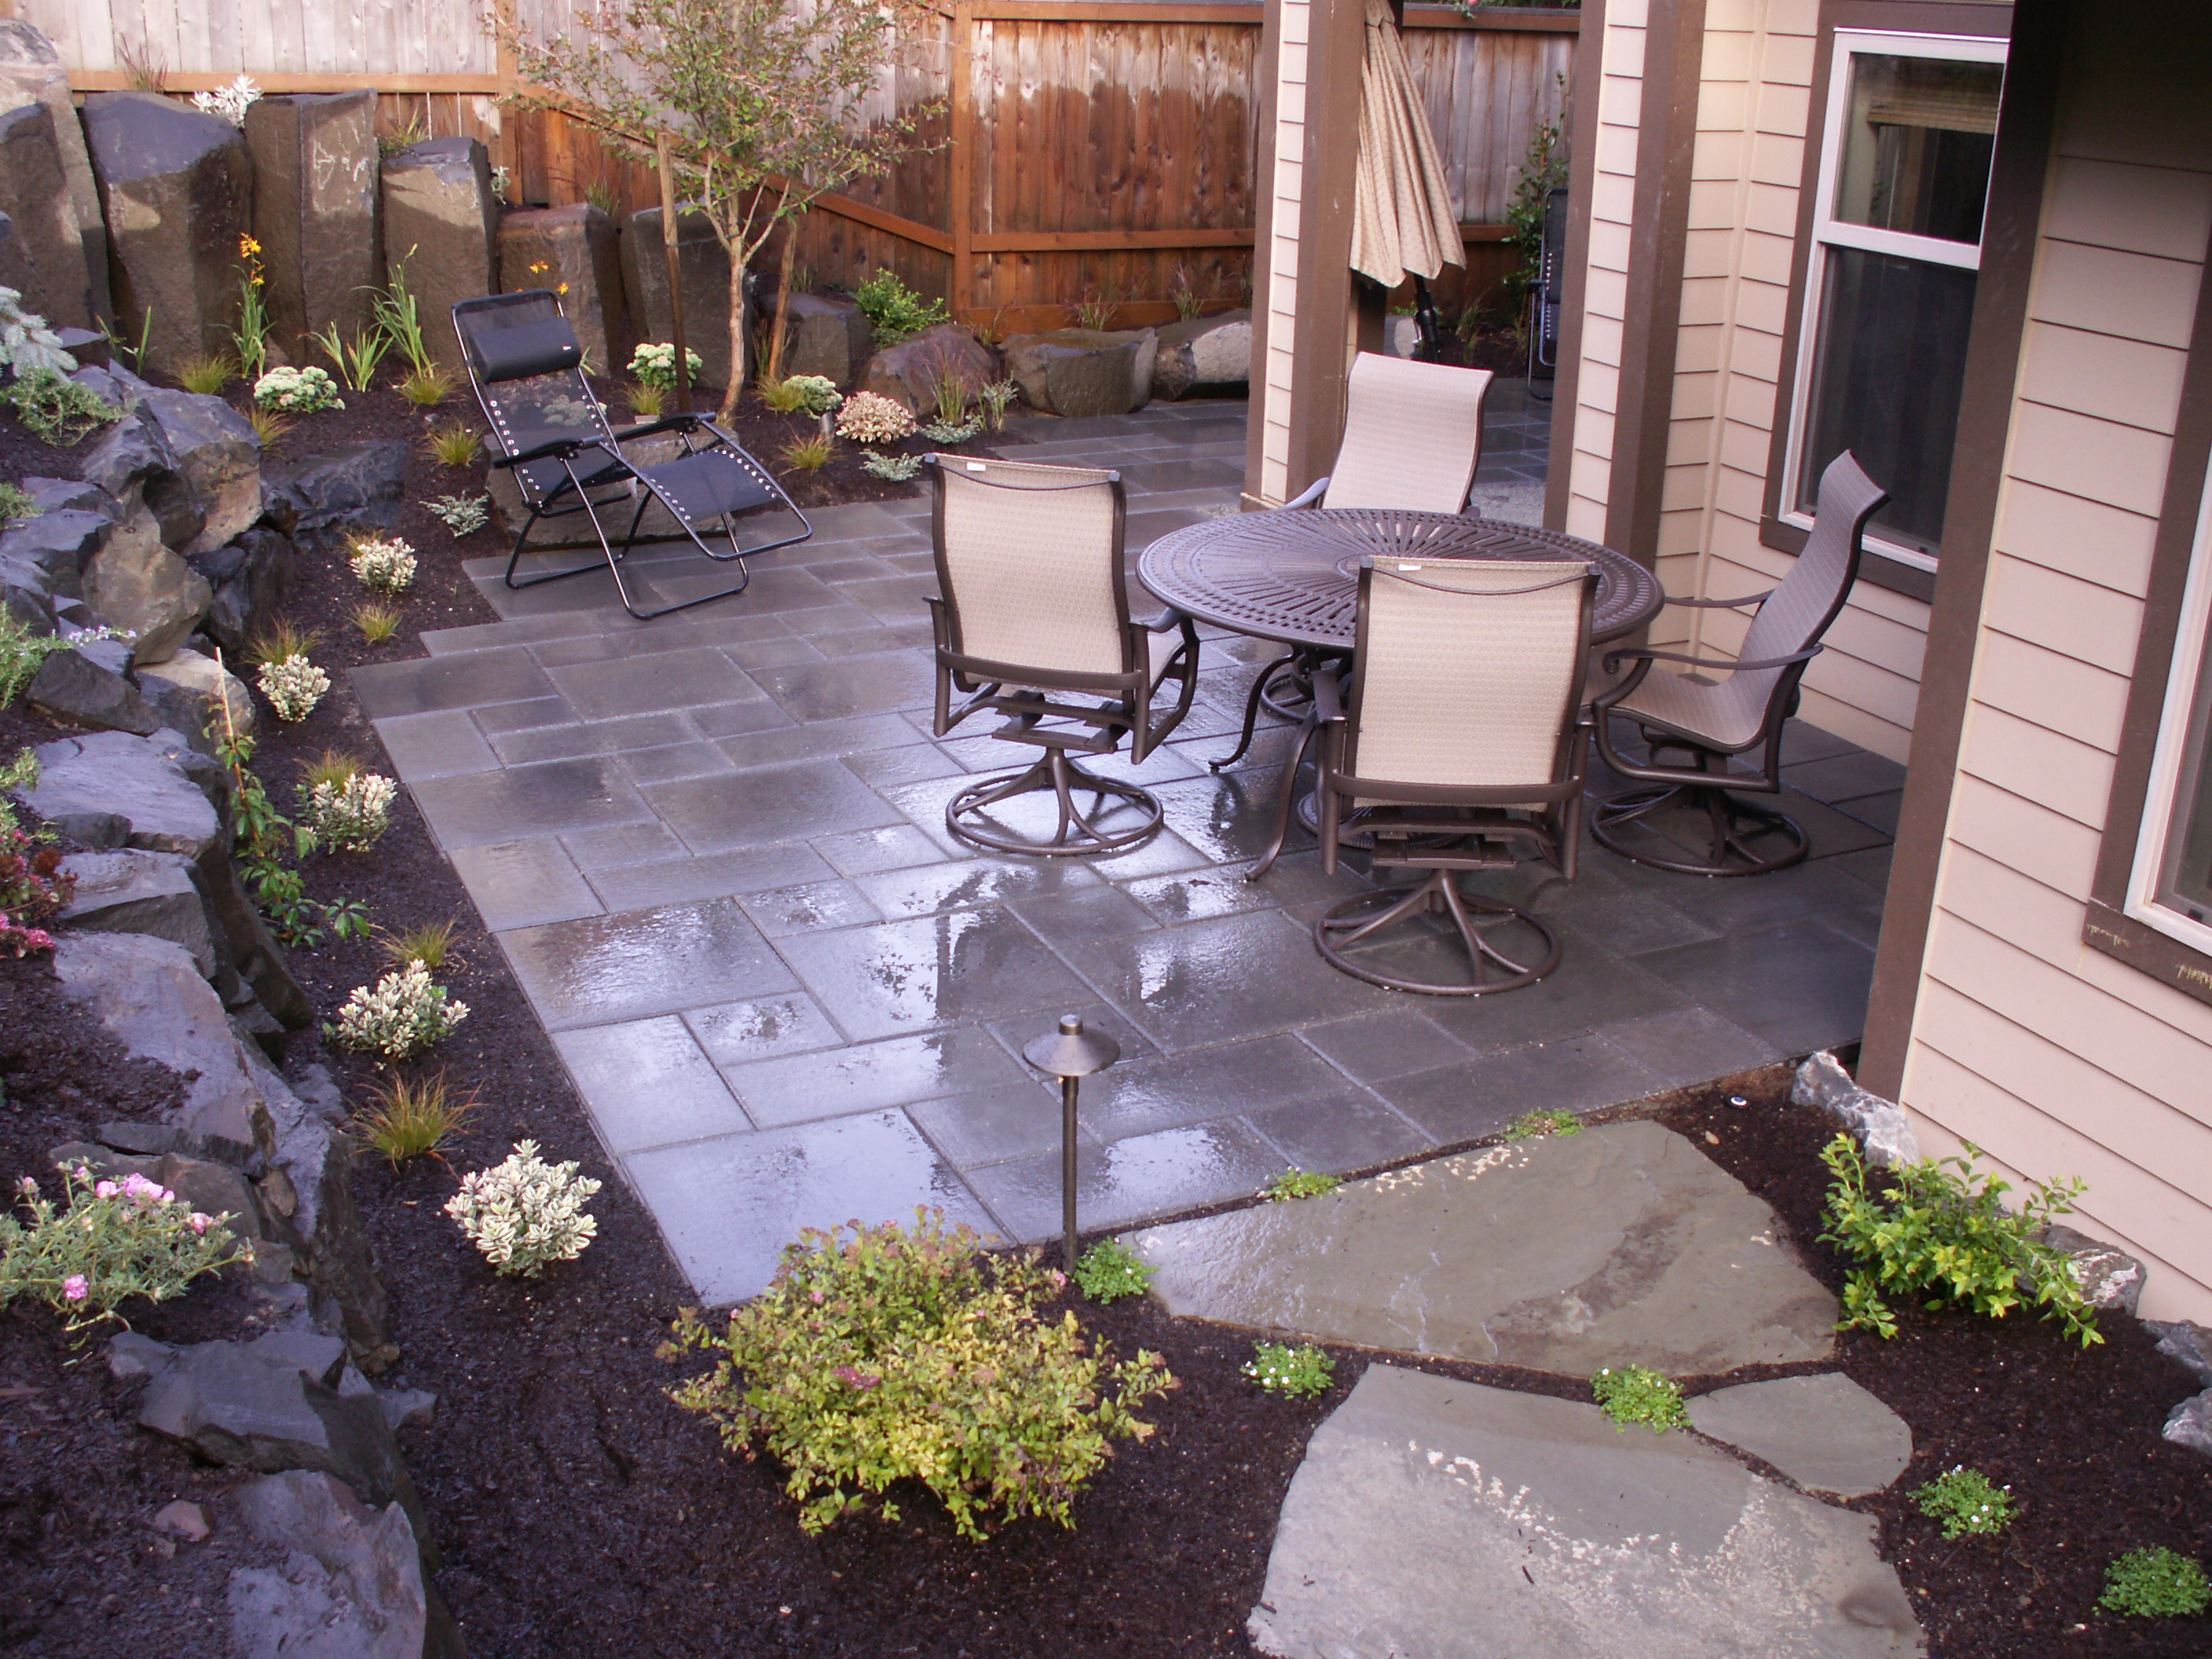 Slate patio designed by Environmental Construction Inc. in Kirkland WA